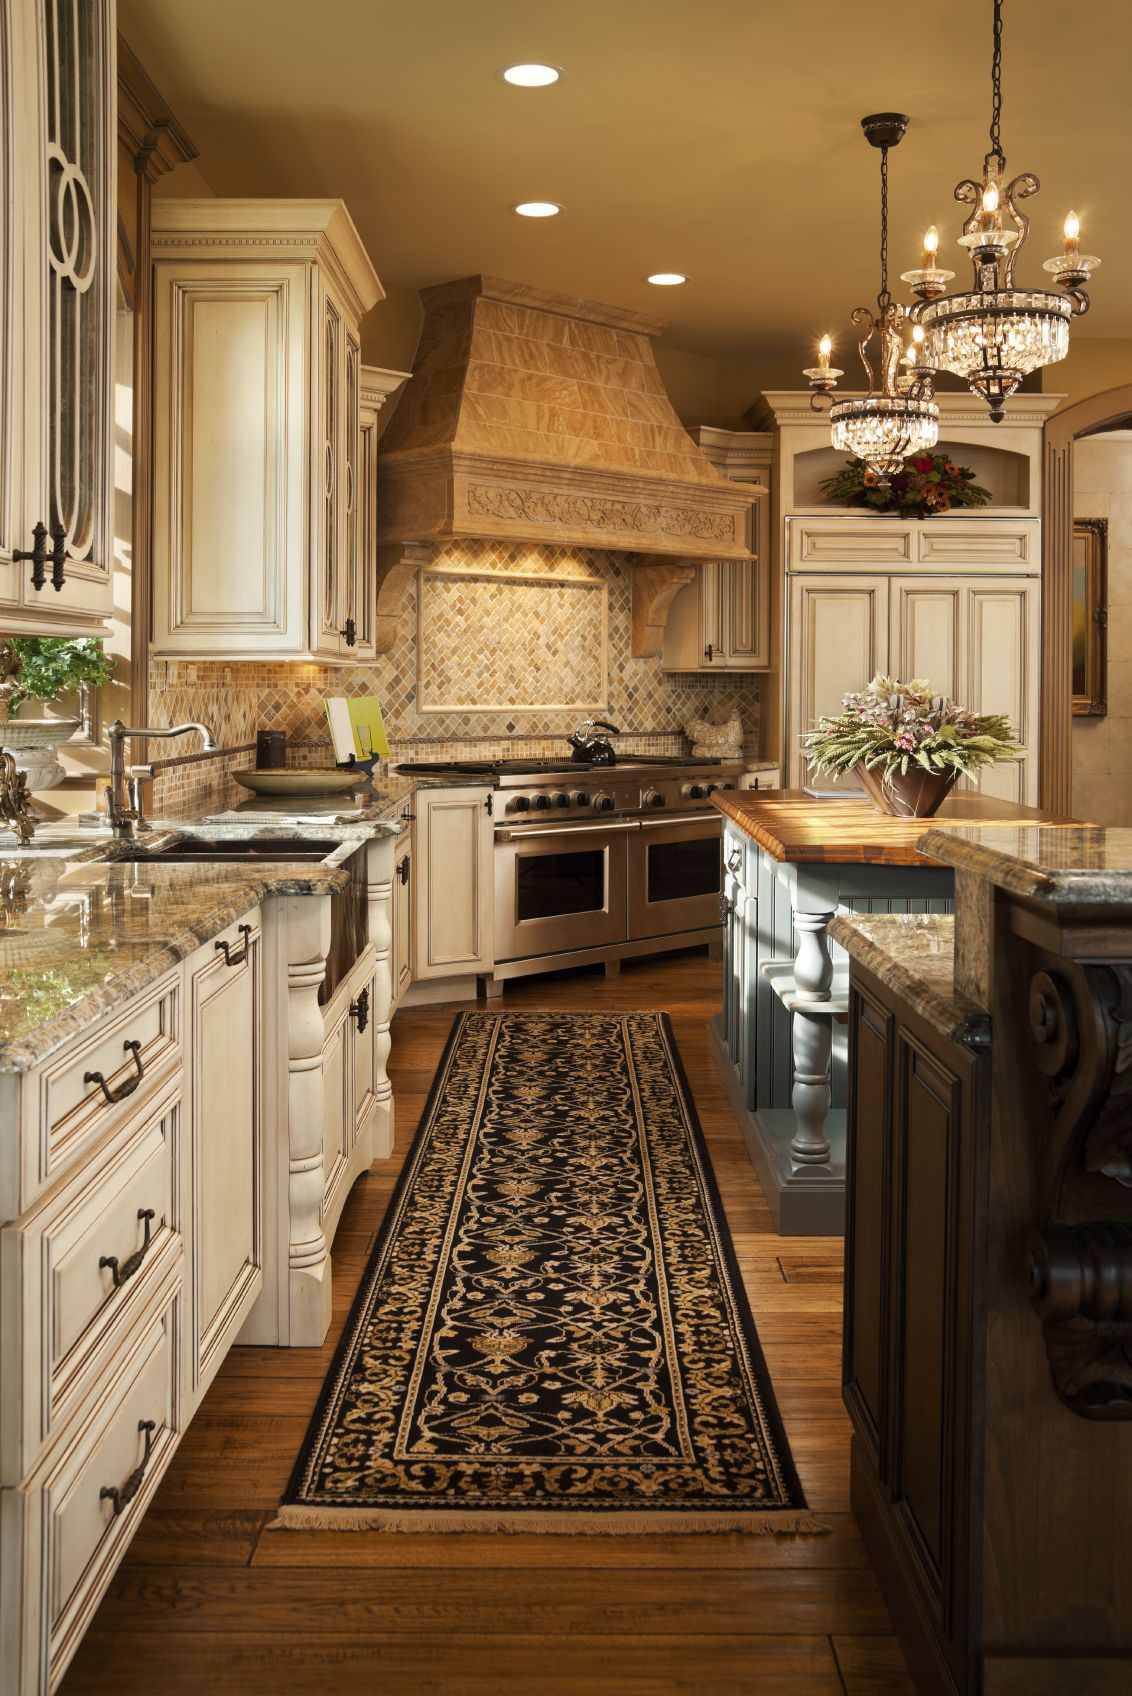 Best Kitchen Gallery: 30 Custom Luxury Kitchen Designs That Cost More Than 100 000 of Imgaes Luxury Tuscan Kitchen on rachelxblog.com